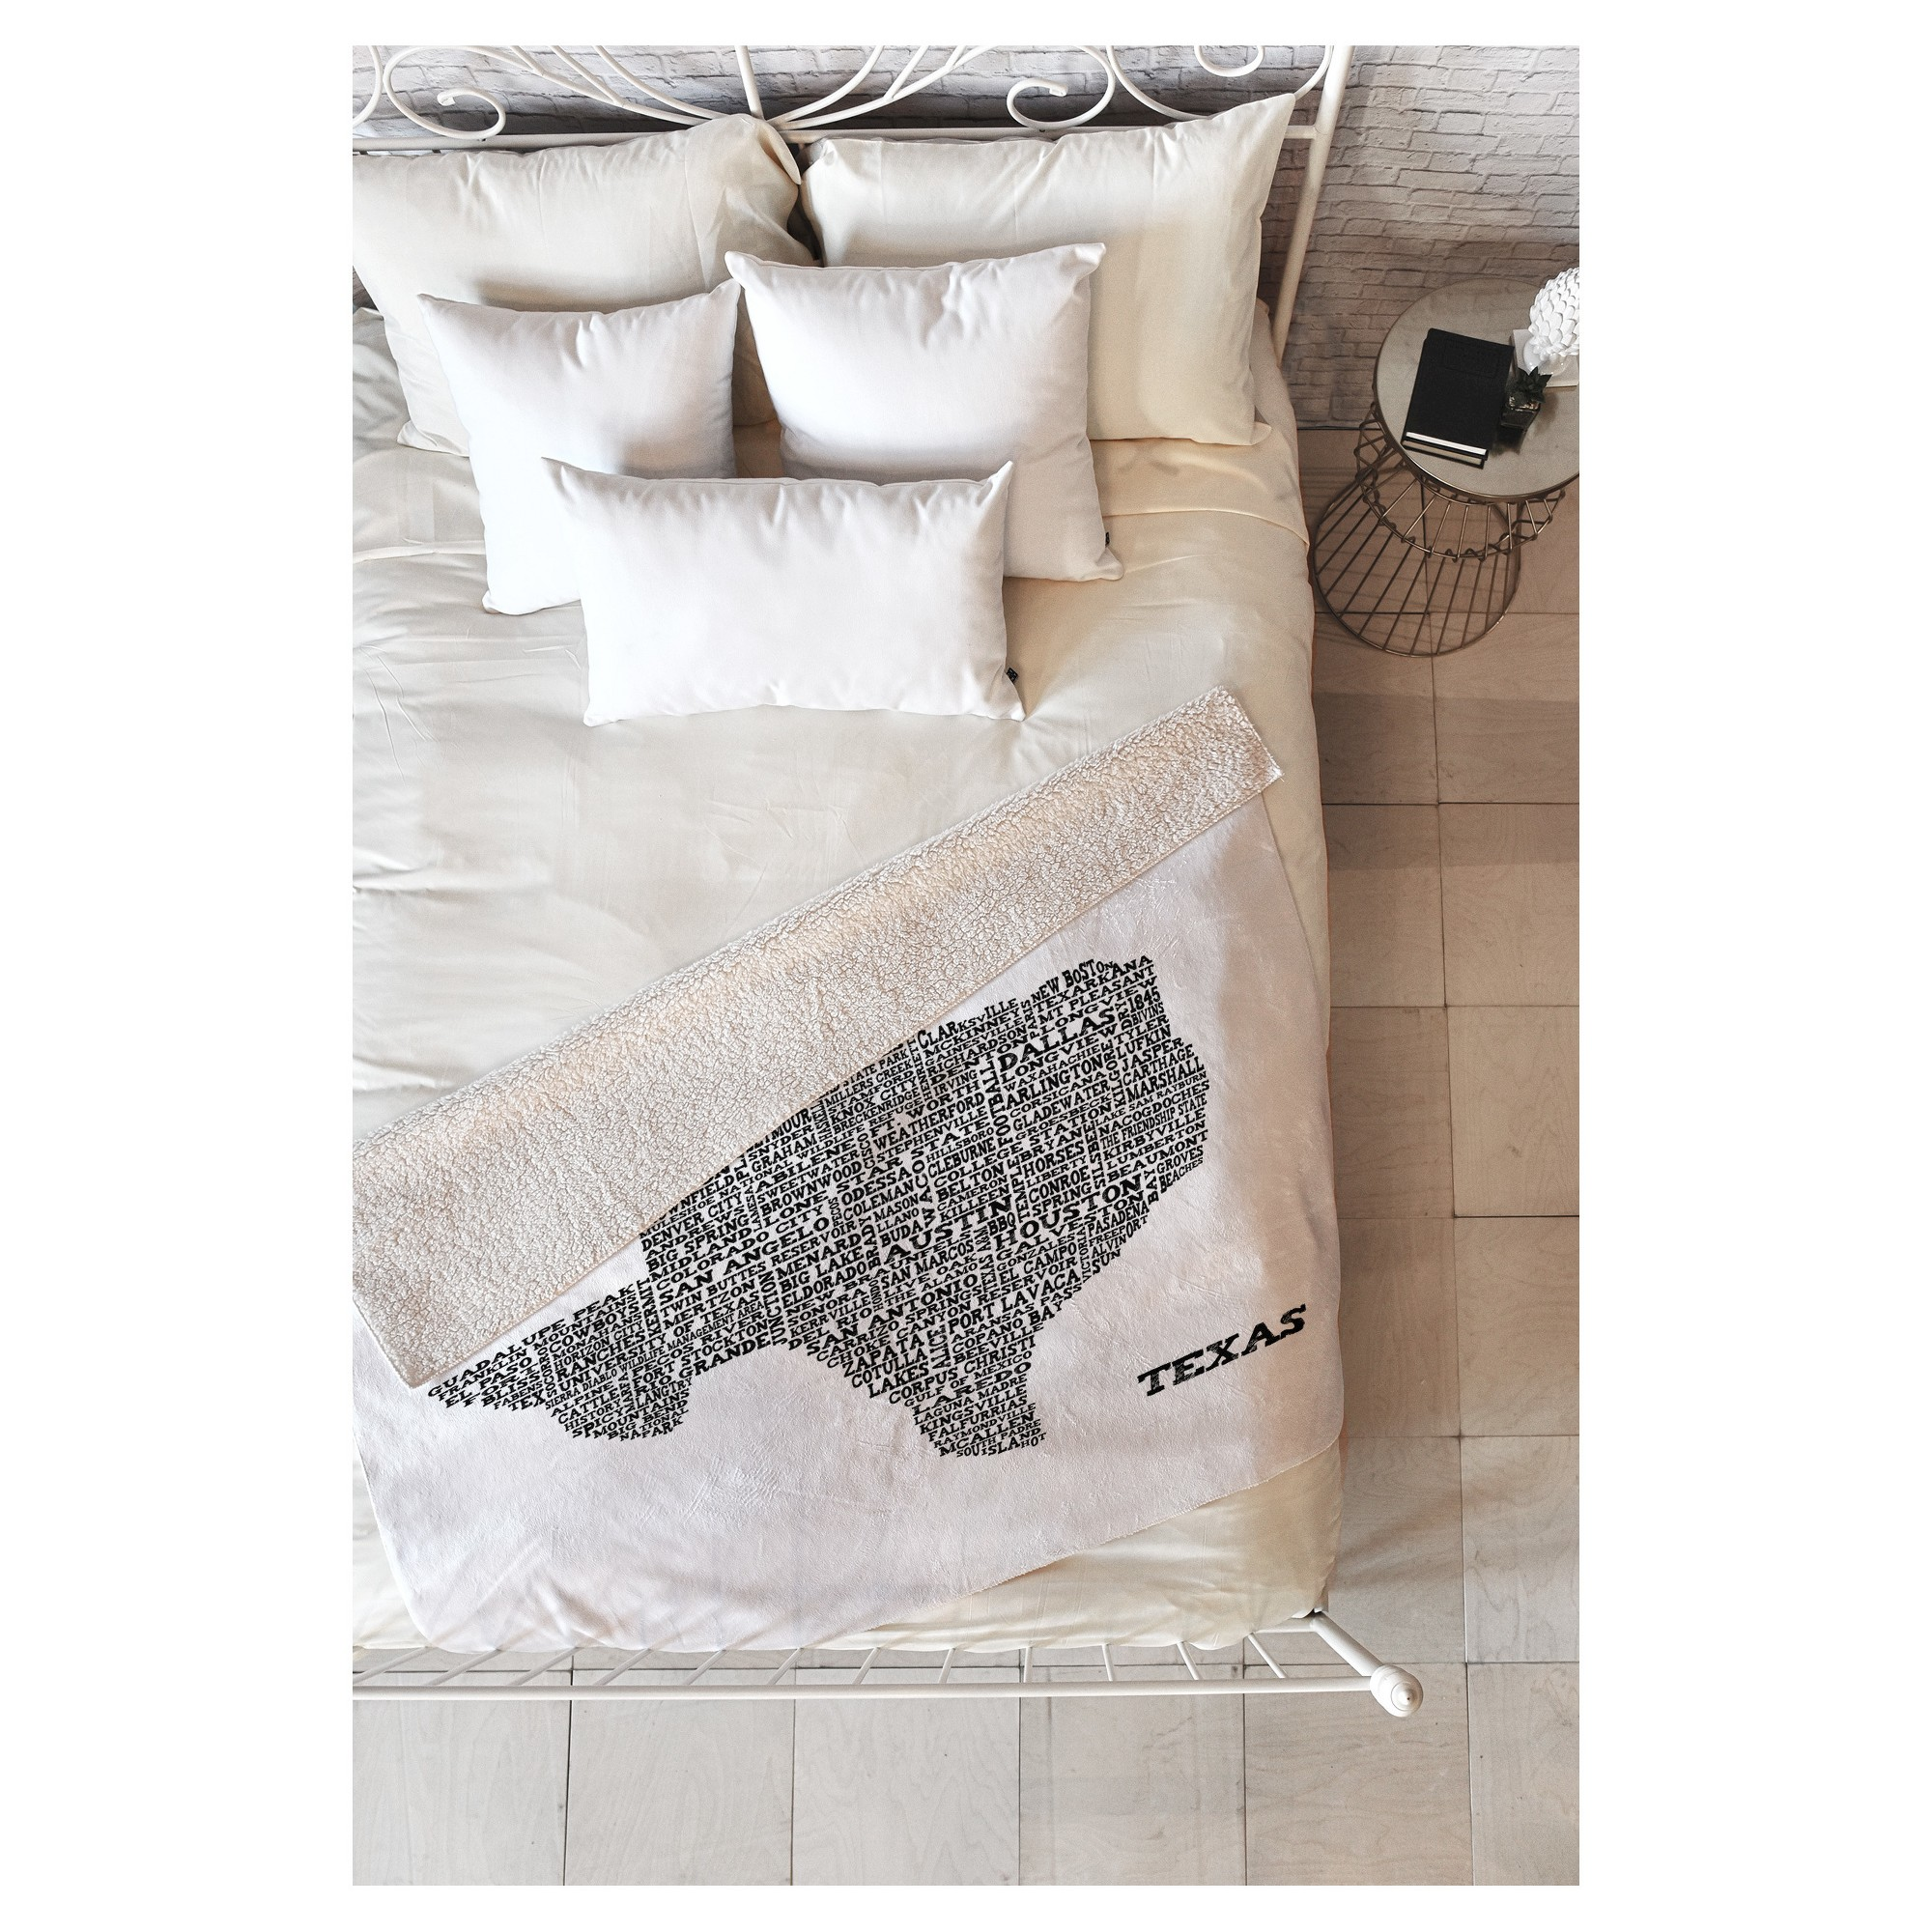 Deny designs black travel restudio designs texas map sherpa throw